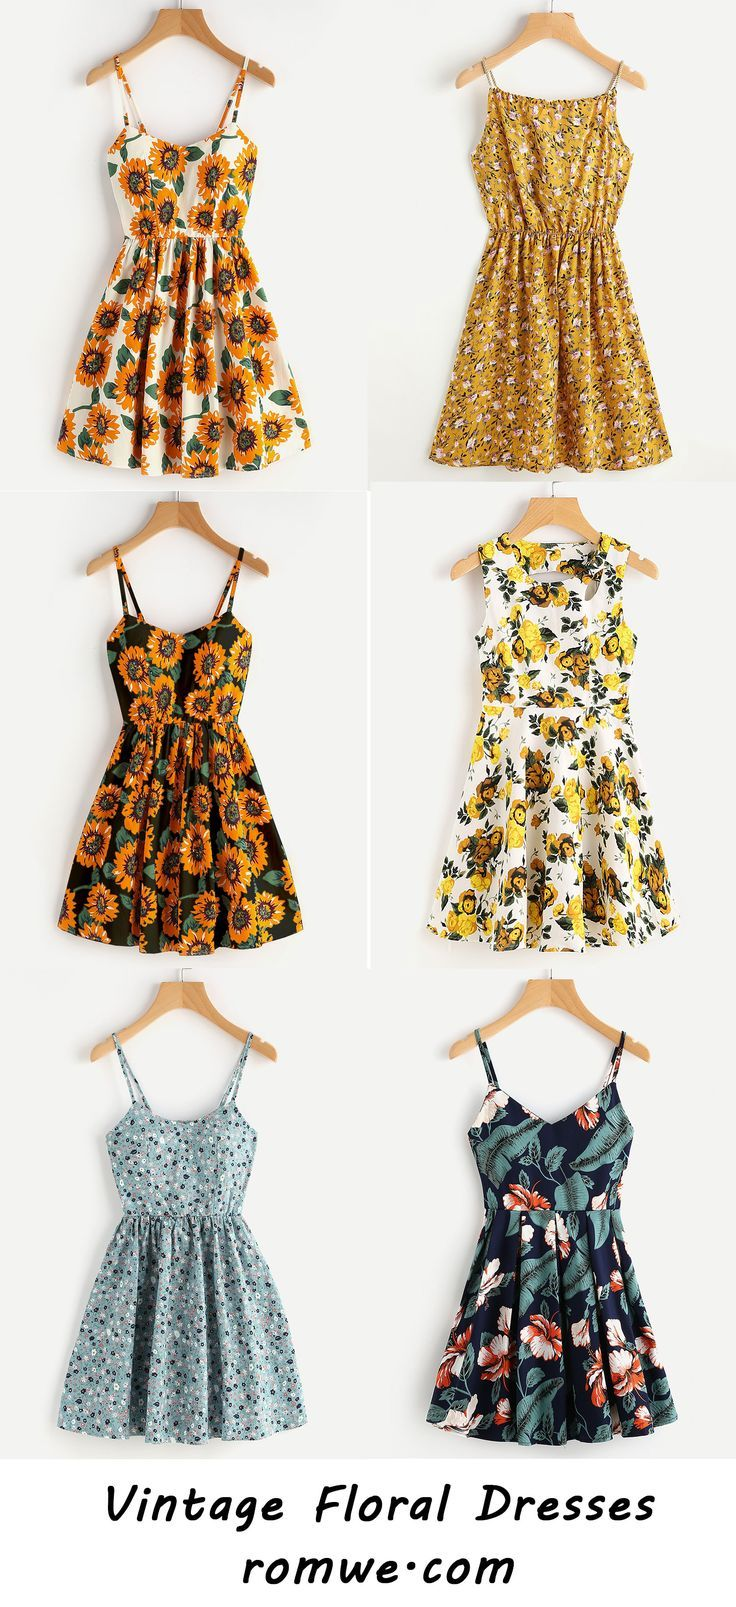 Floral Dresses with soft material, special design and vintage pattern from romwe... 2